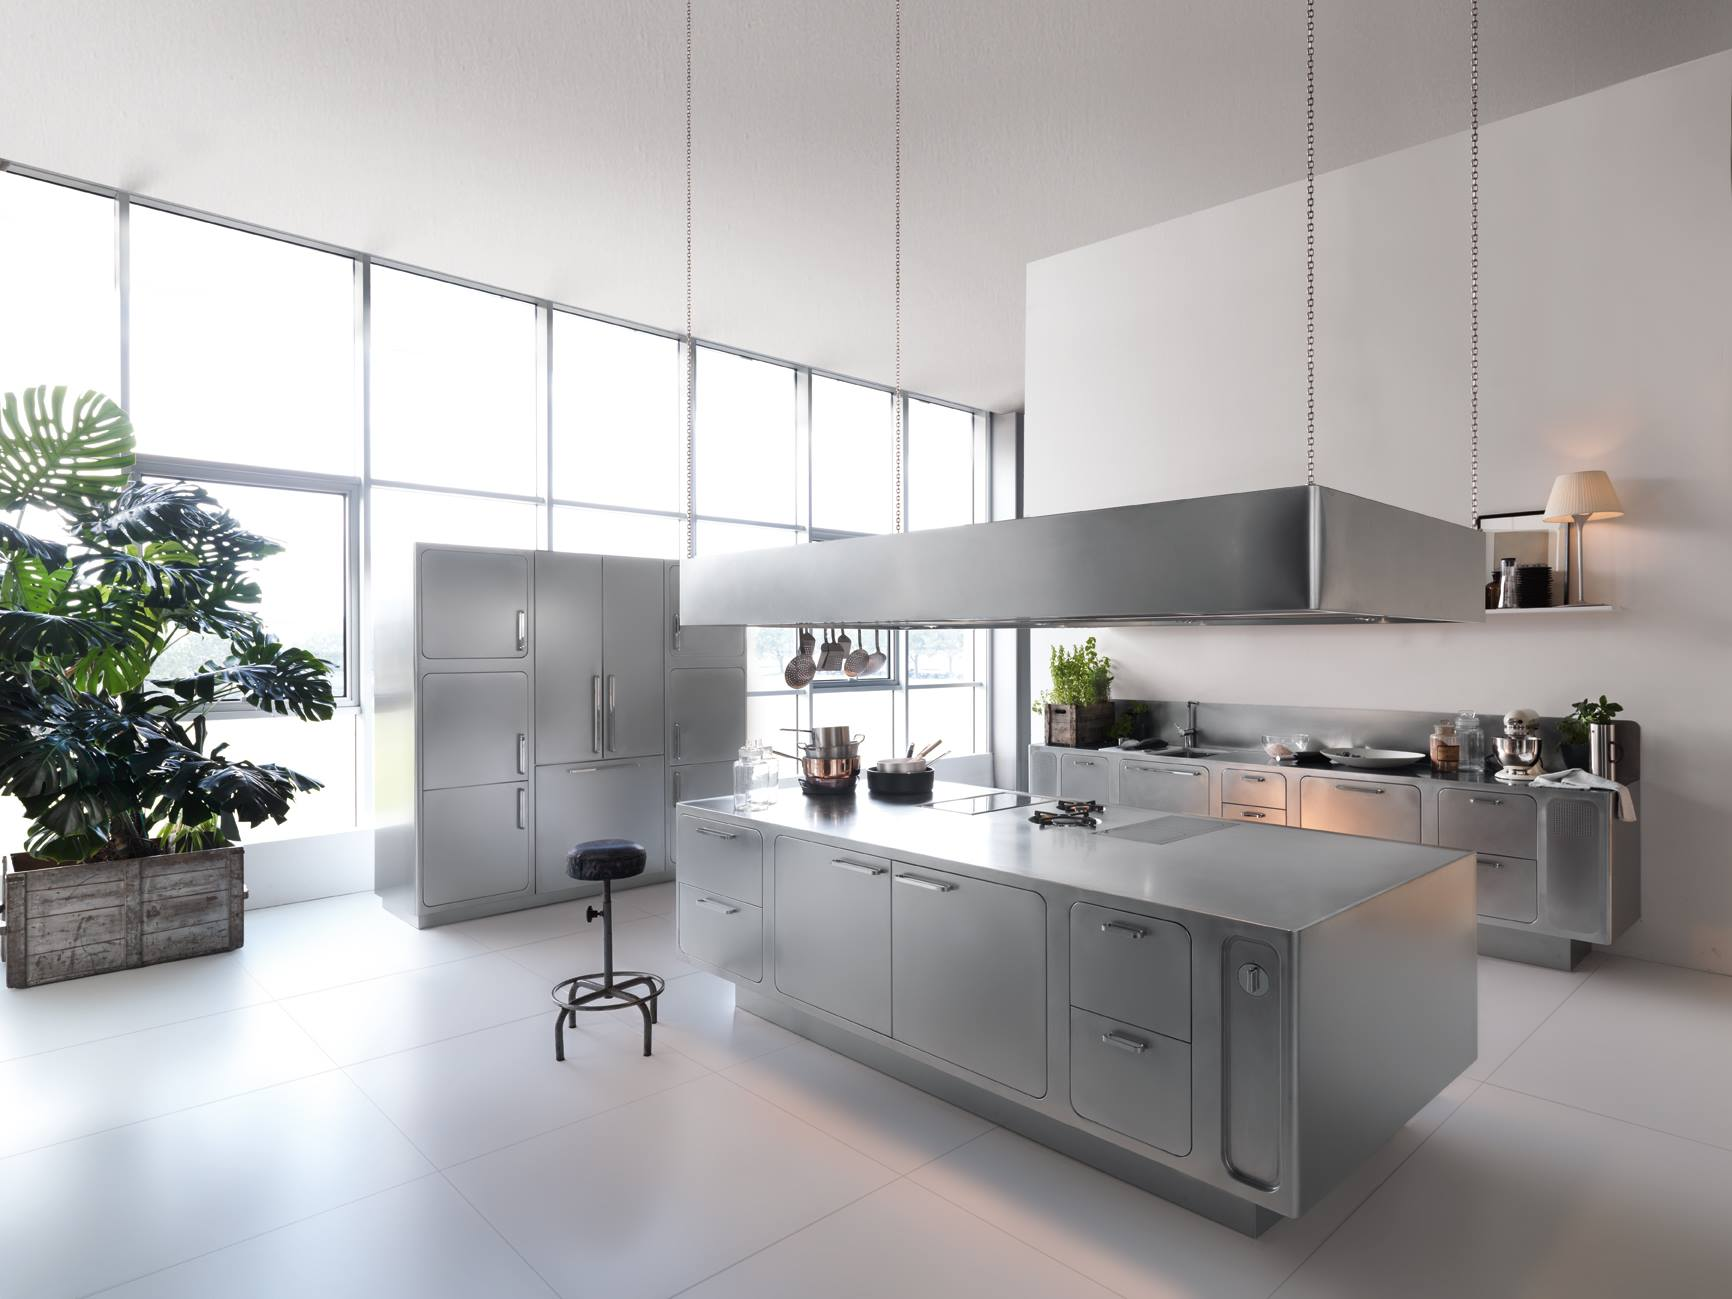 Italian kitchen design european kitchen - Italian kitchen ...